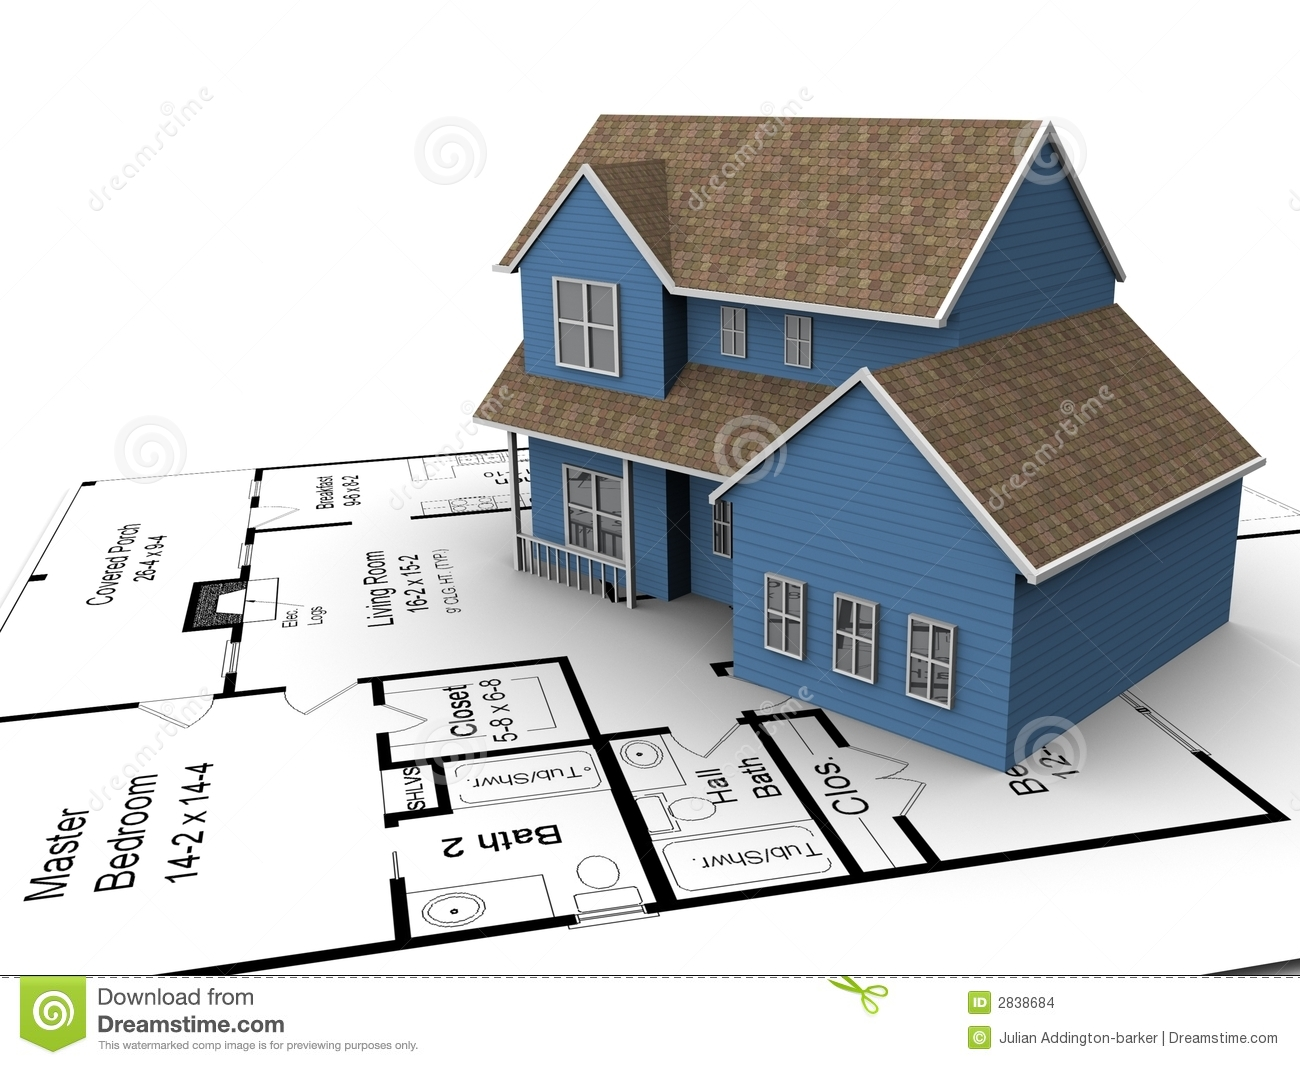 House plan clipart - Home construction designs ...